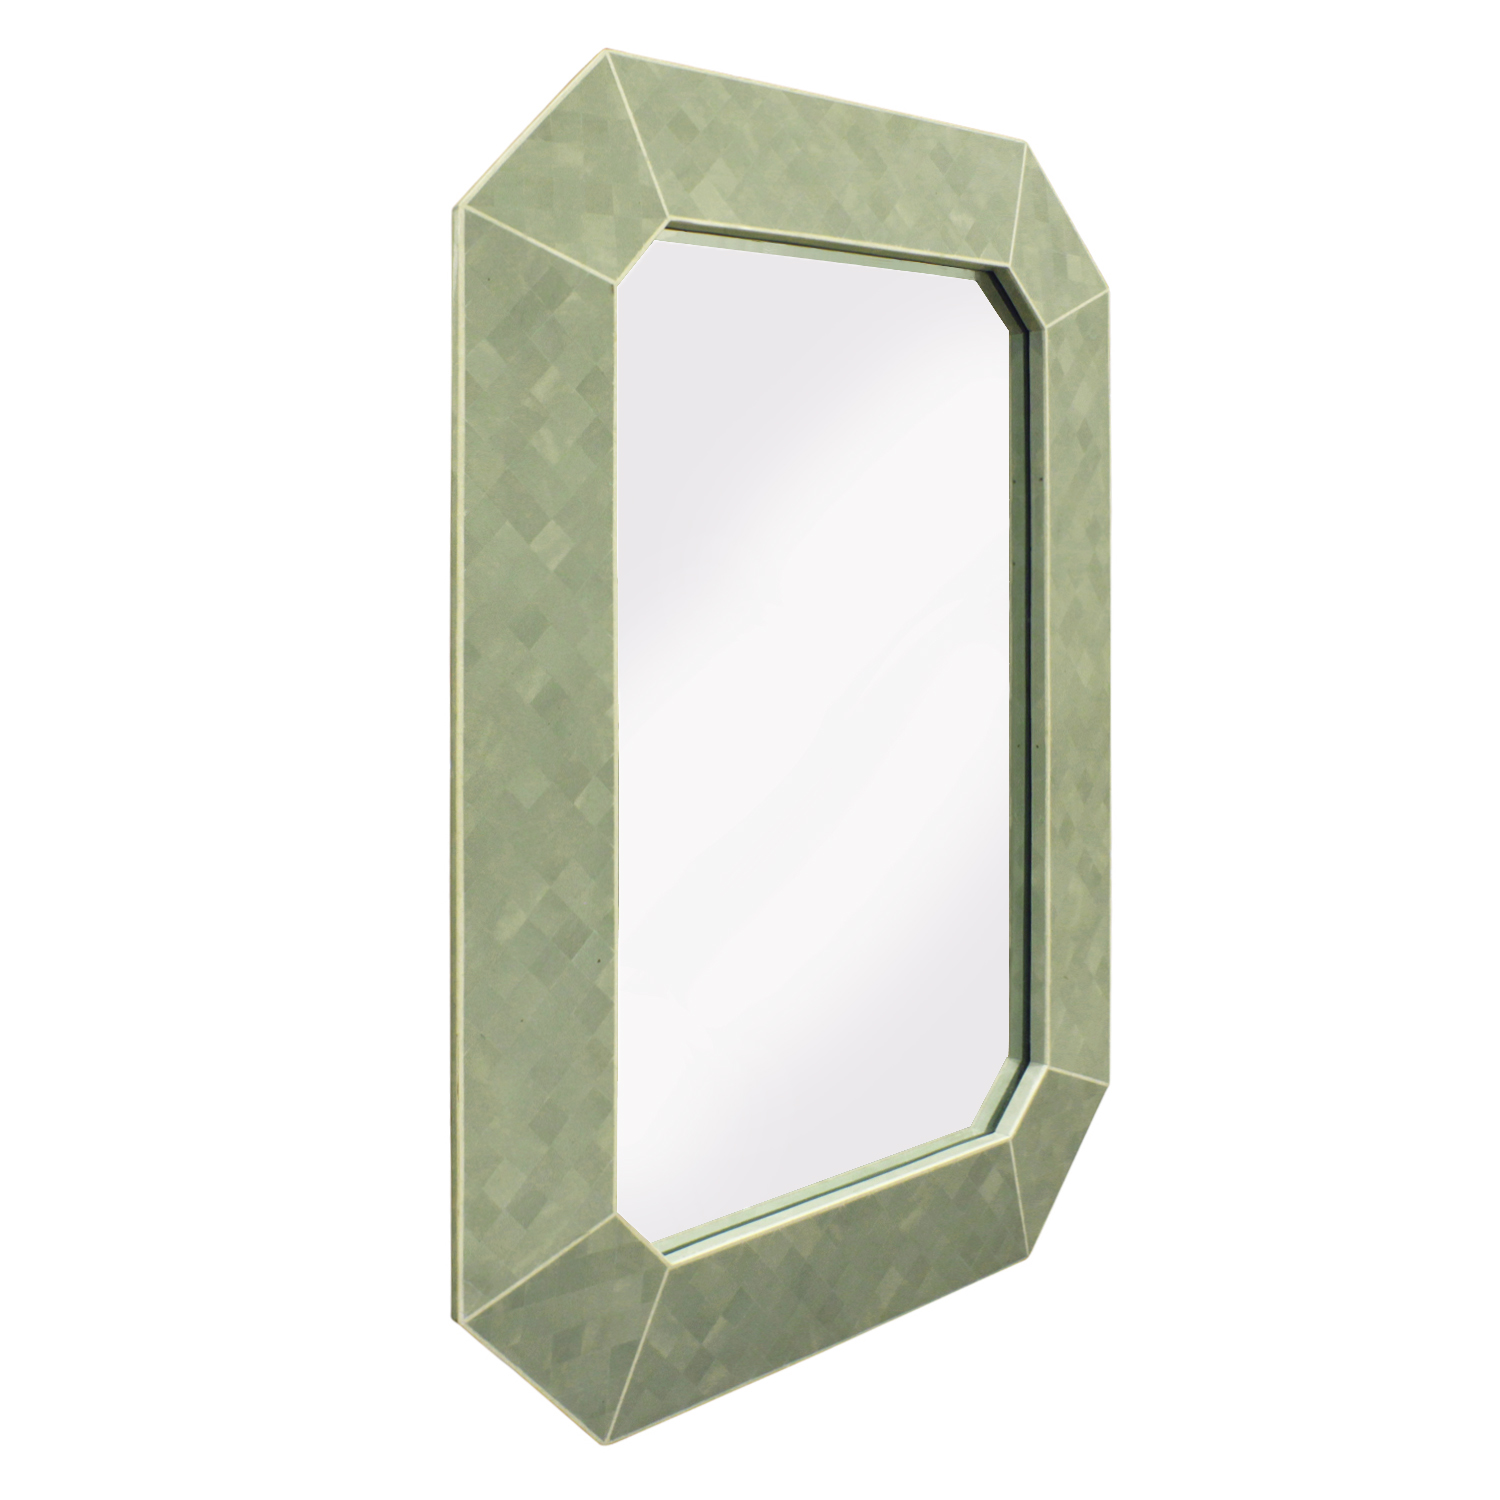 Maitland Smith 75 tess stone+bone mirror237 angle.jpg